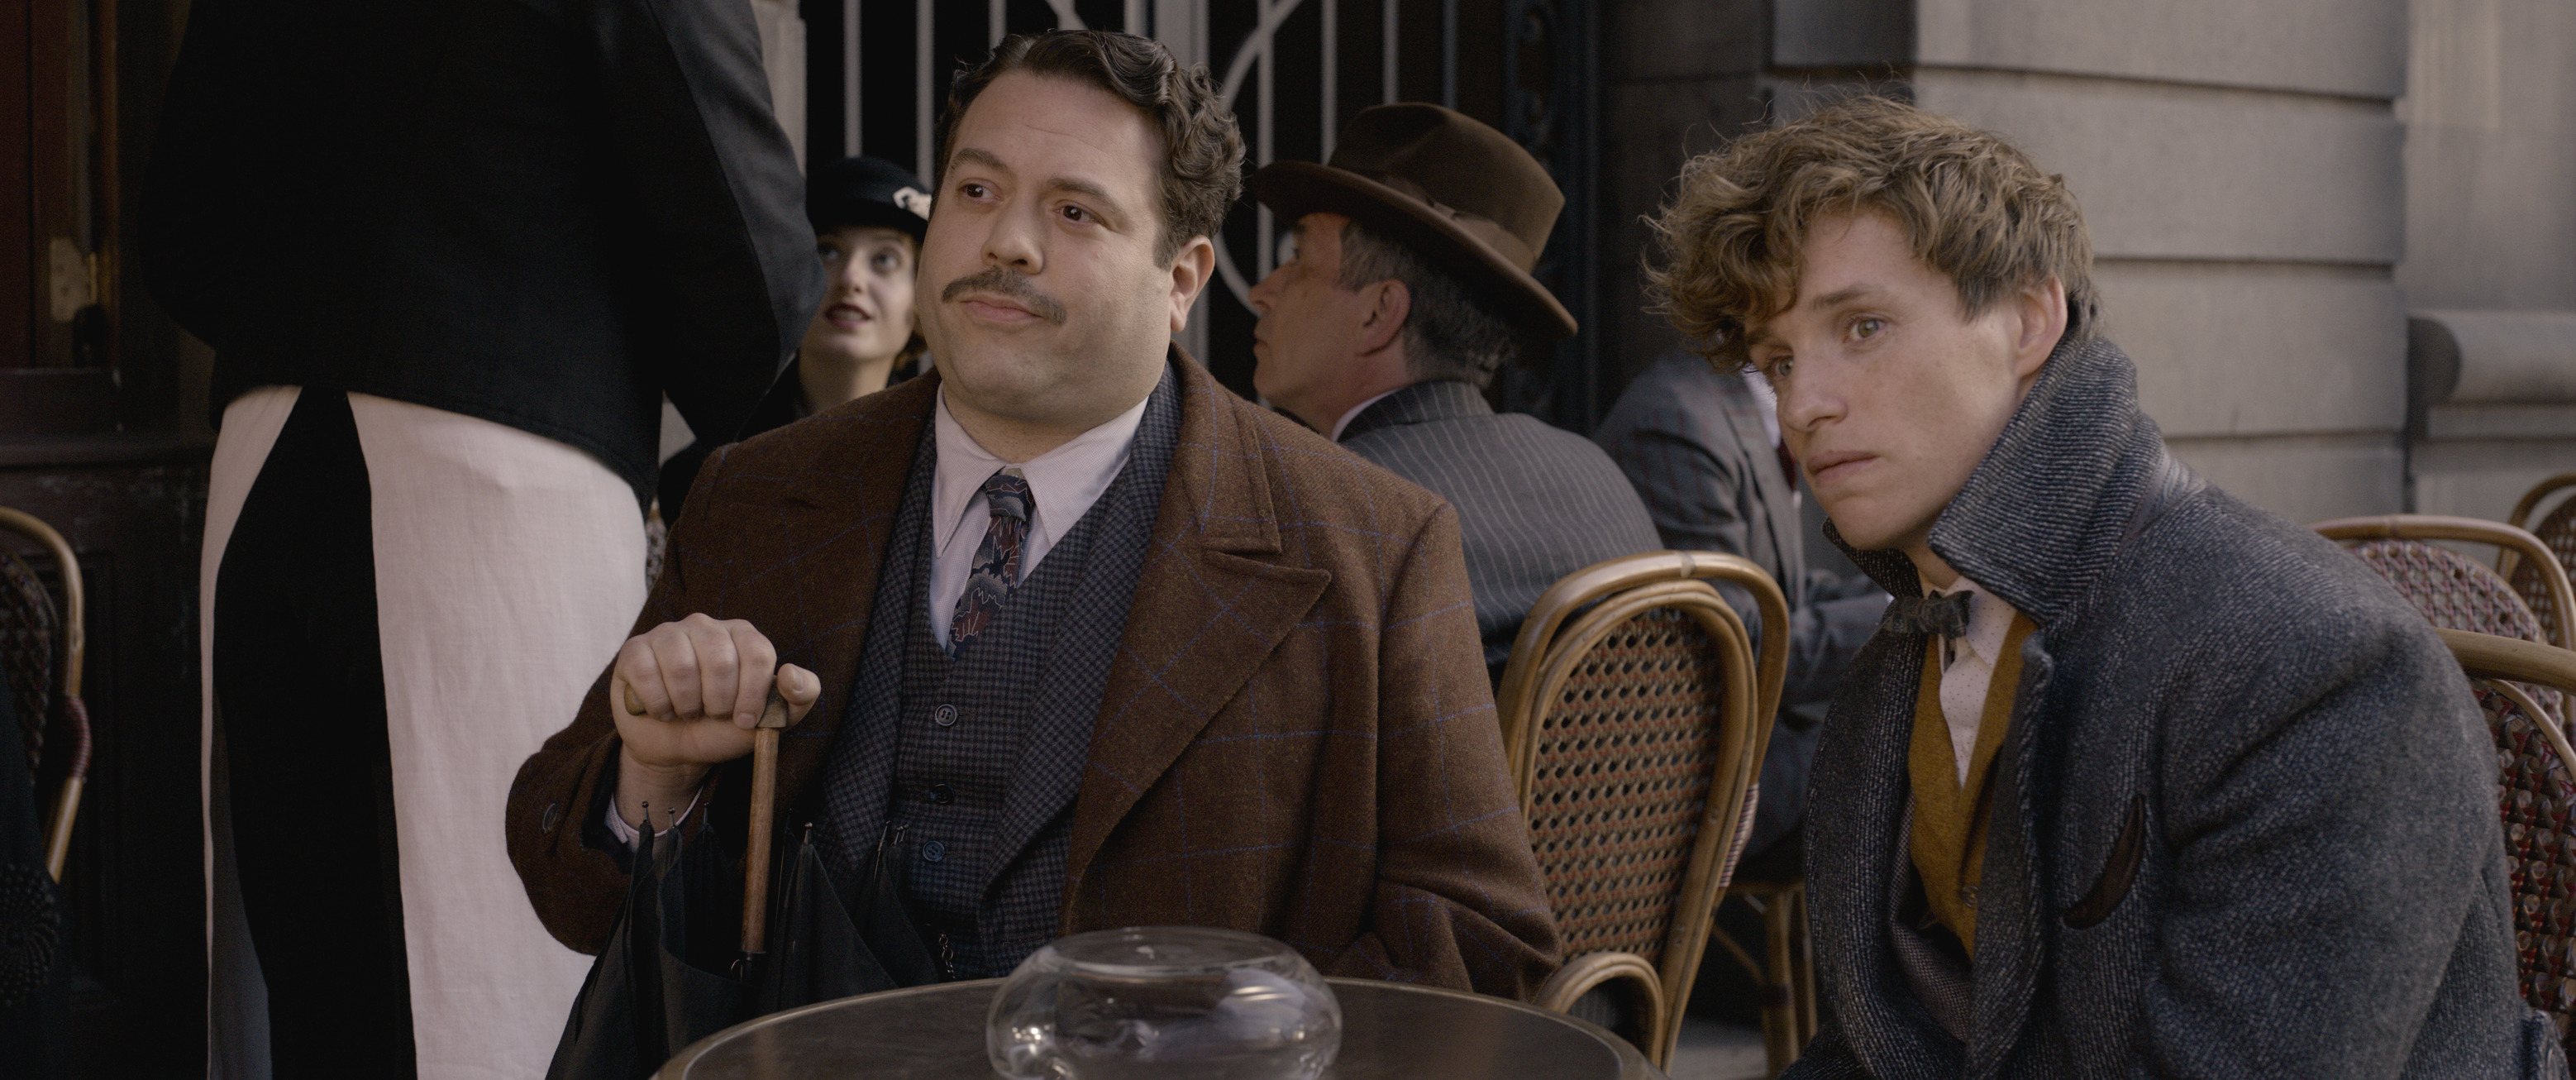 """Fantastic Beasts: The Crimes of Grindelwald"": Jacob Kowalski (Dan Fogler) and Newt Scamander (Eddie Redmayne)"